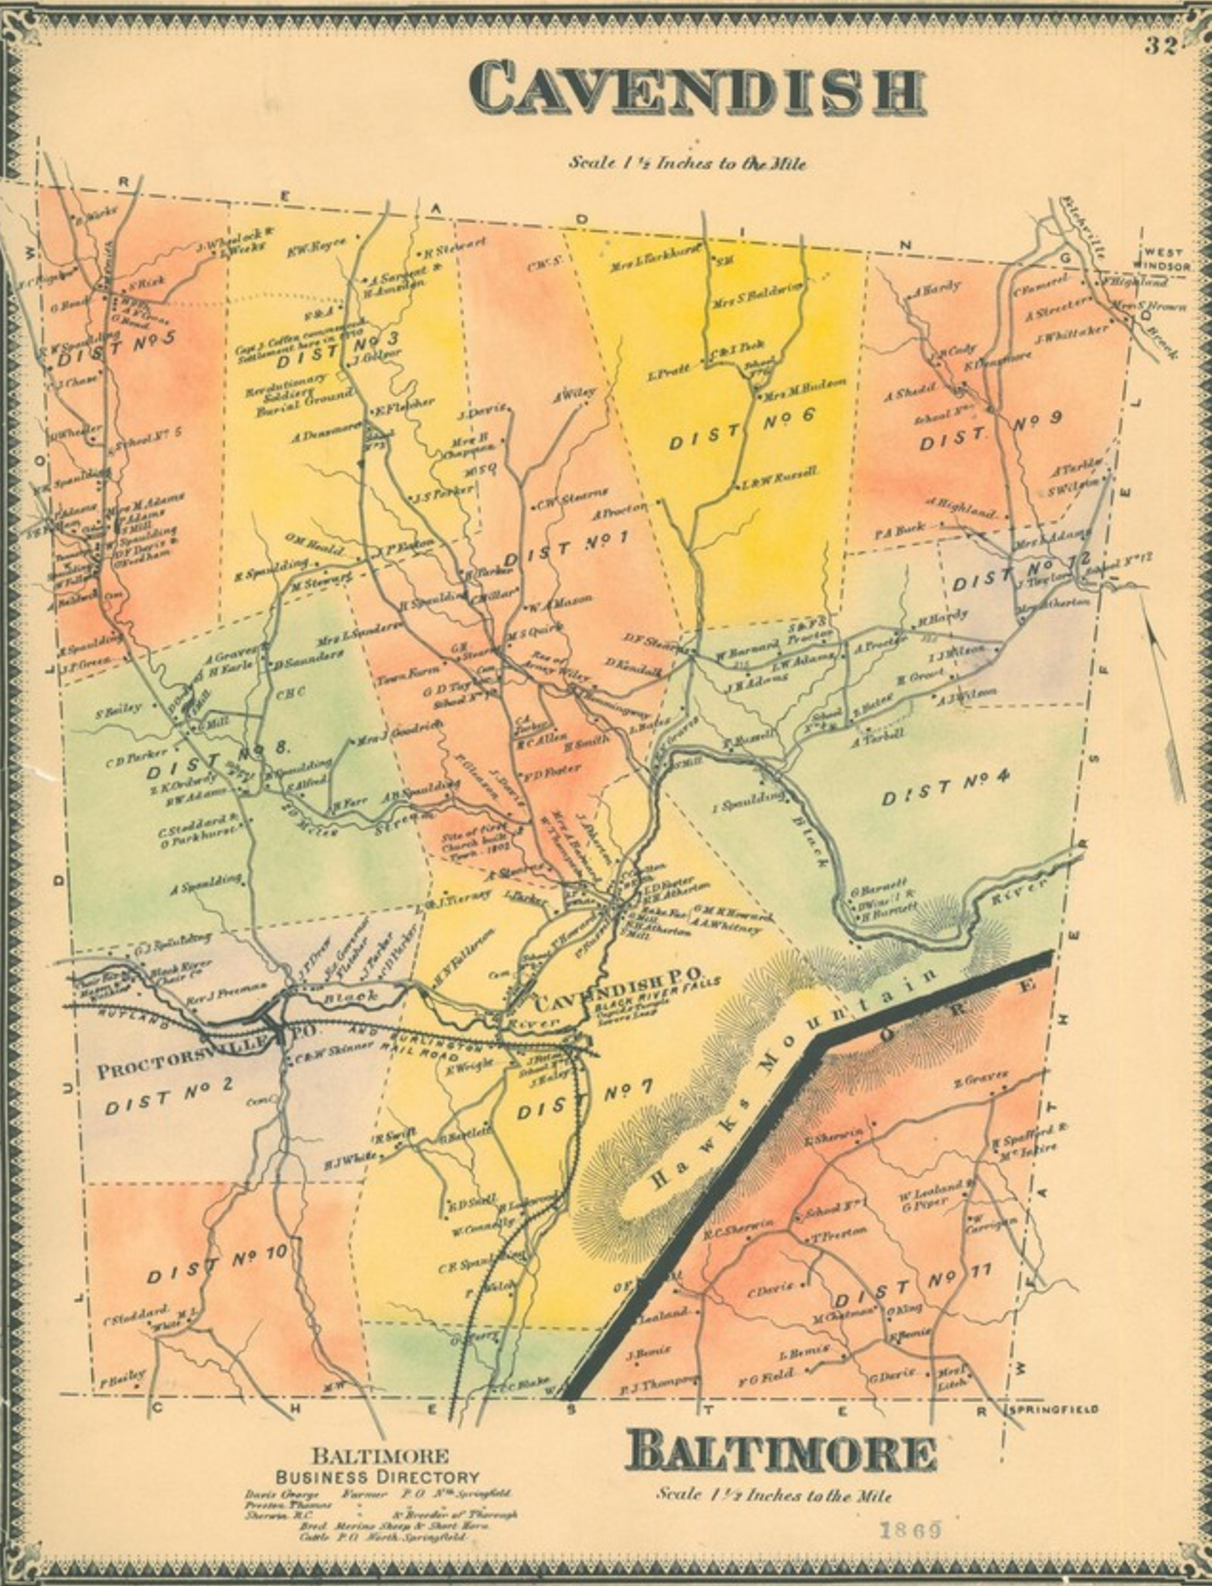 1869 Map of the Town of Cavendish | Beers Atlas 1869  Includes the ten historic school districts